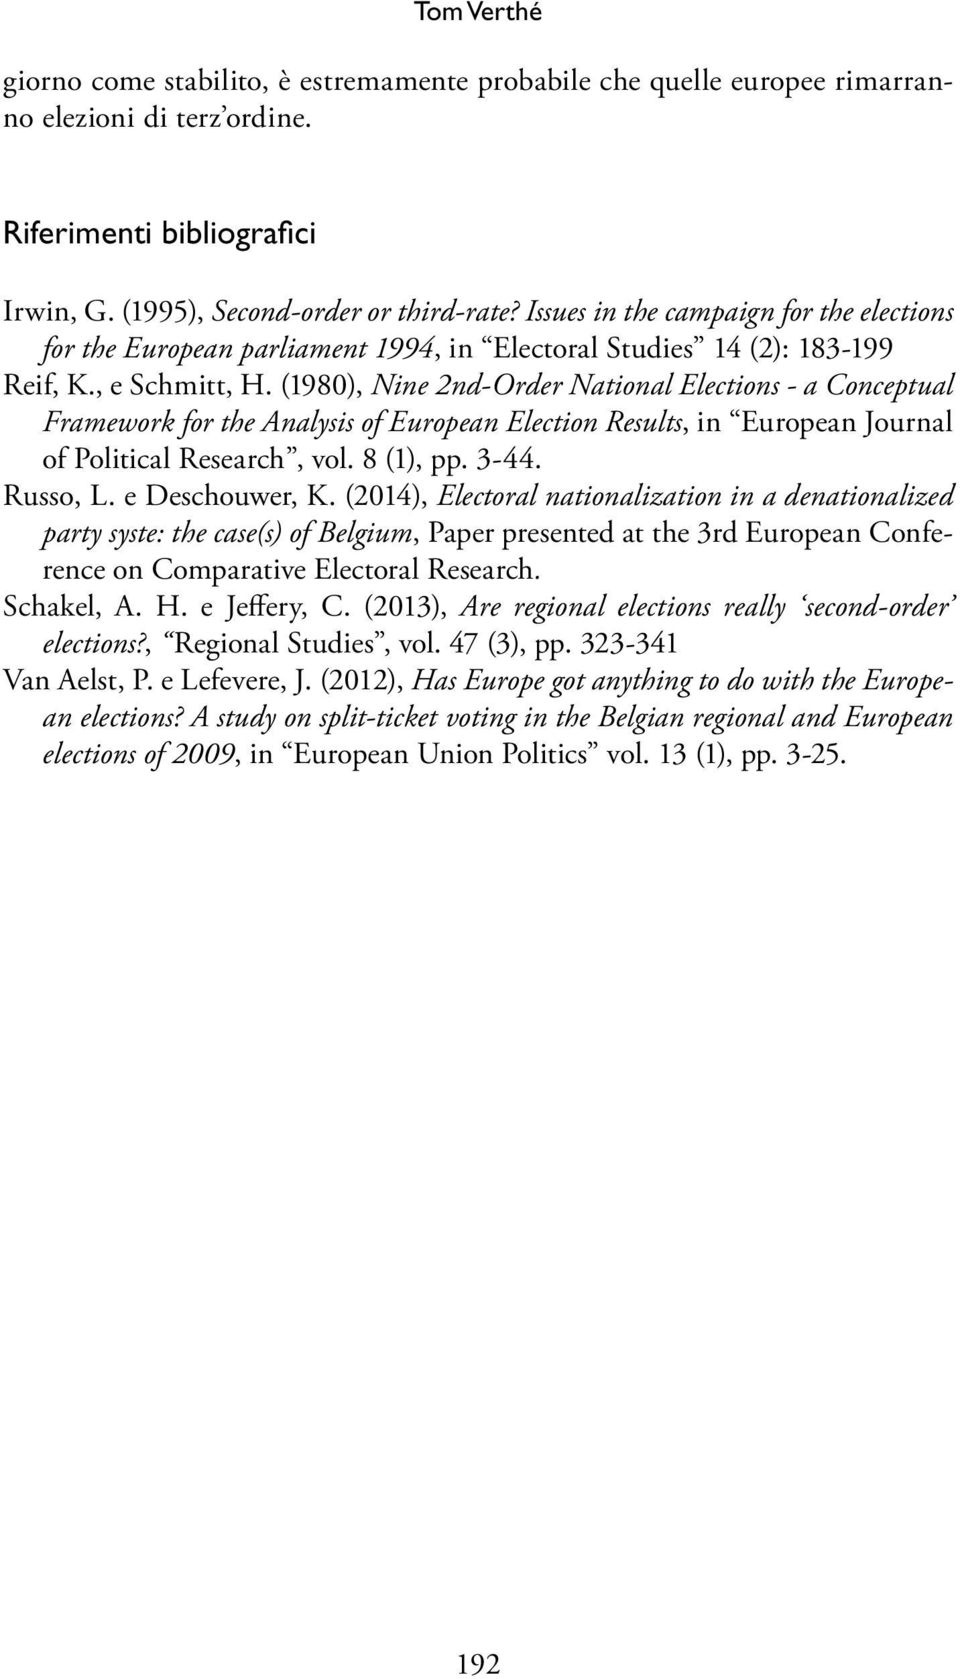 (1980), Nine 2nd-Order National Elections - a Conceptual Framework for the Analysis of European Election Results, in European Journal of Political Research, vol. 8 (1), pp. 3-44. Russo, L.